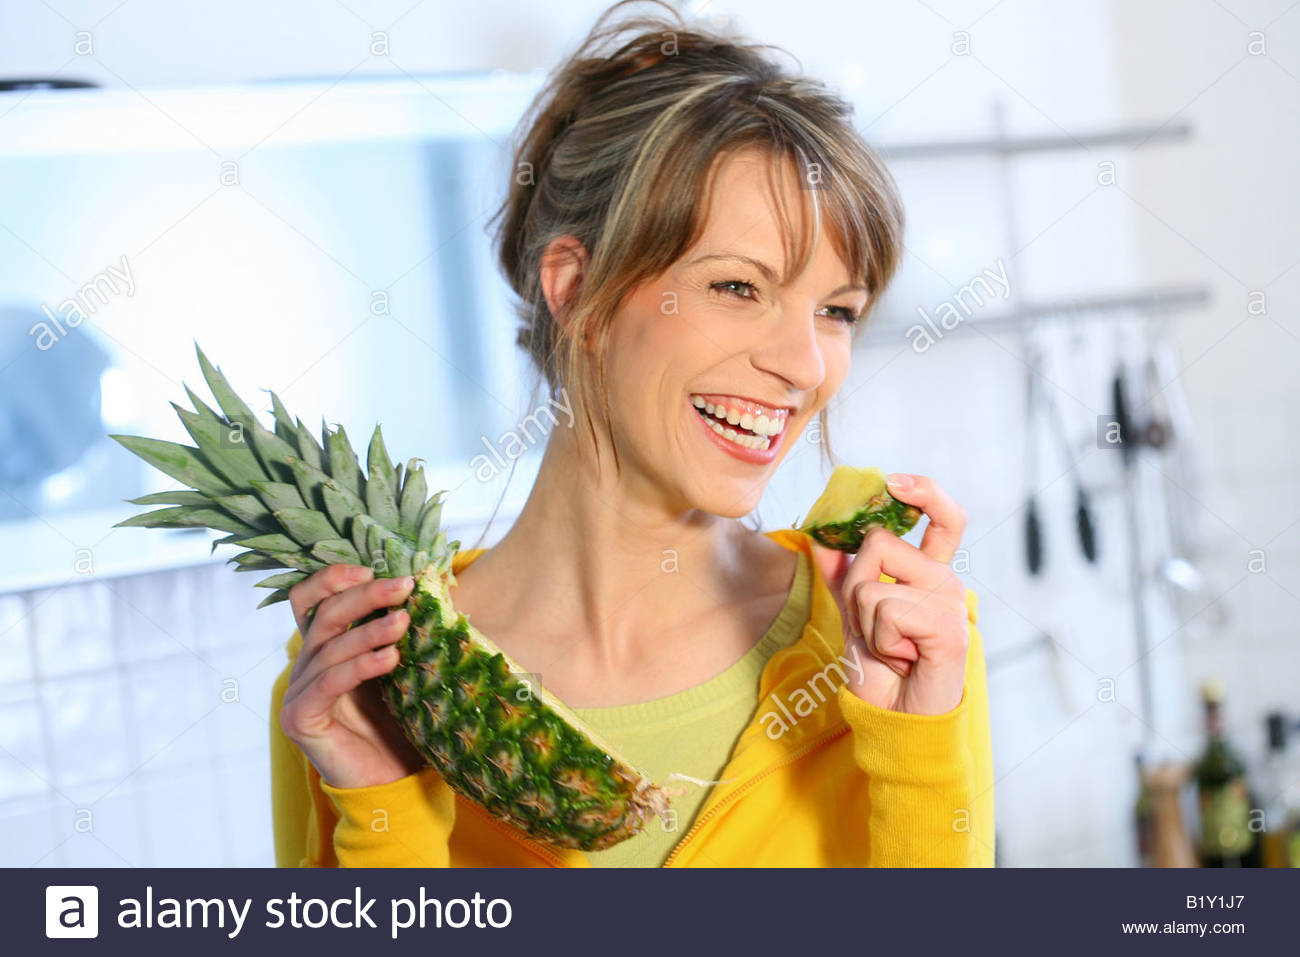 woman eating pineapple Stock Photo